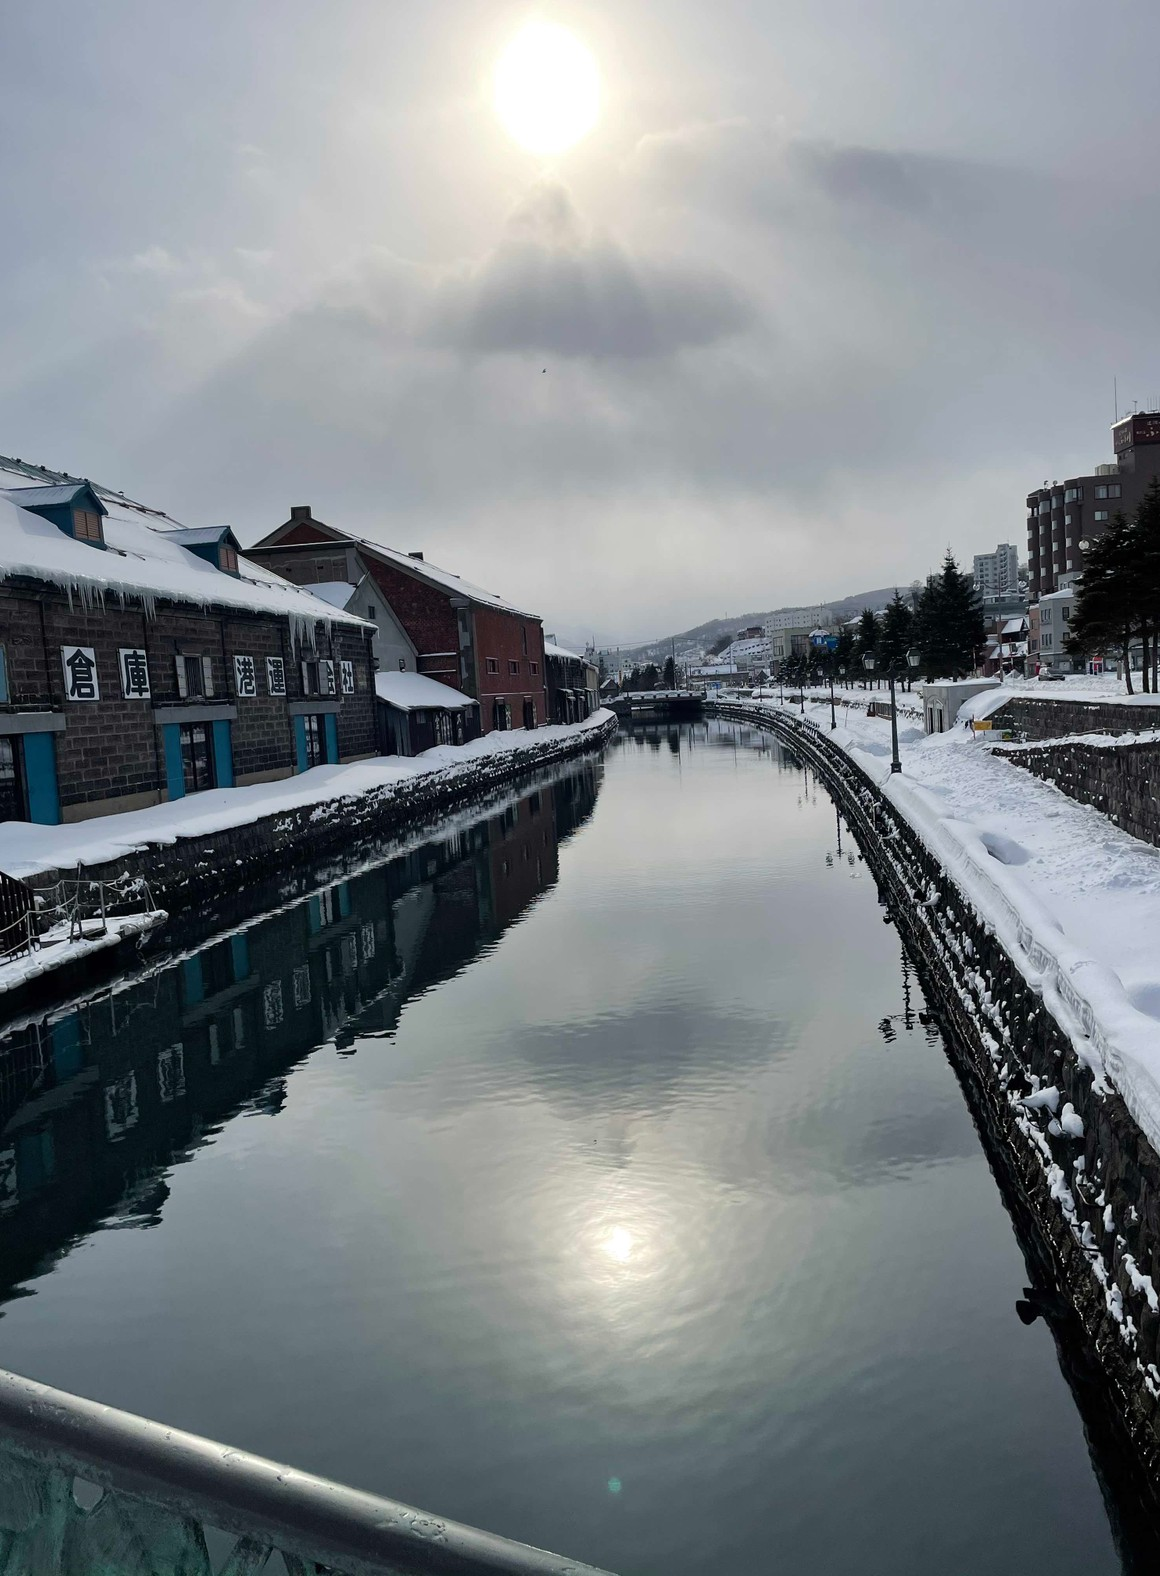 Let's enjoy Otaru without losing the cold